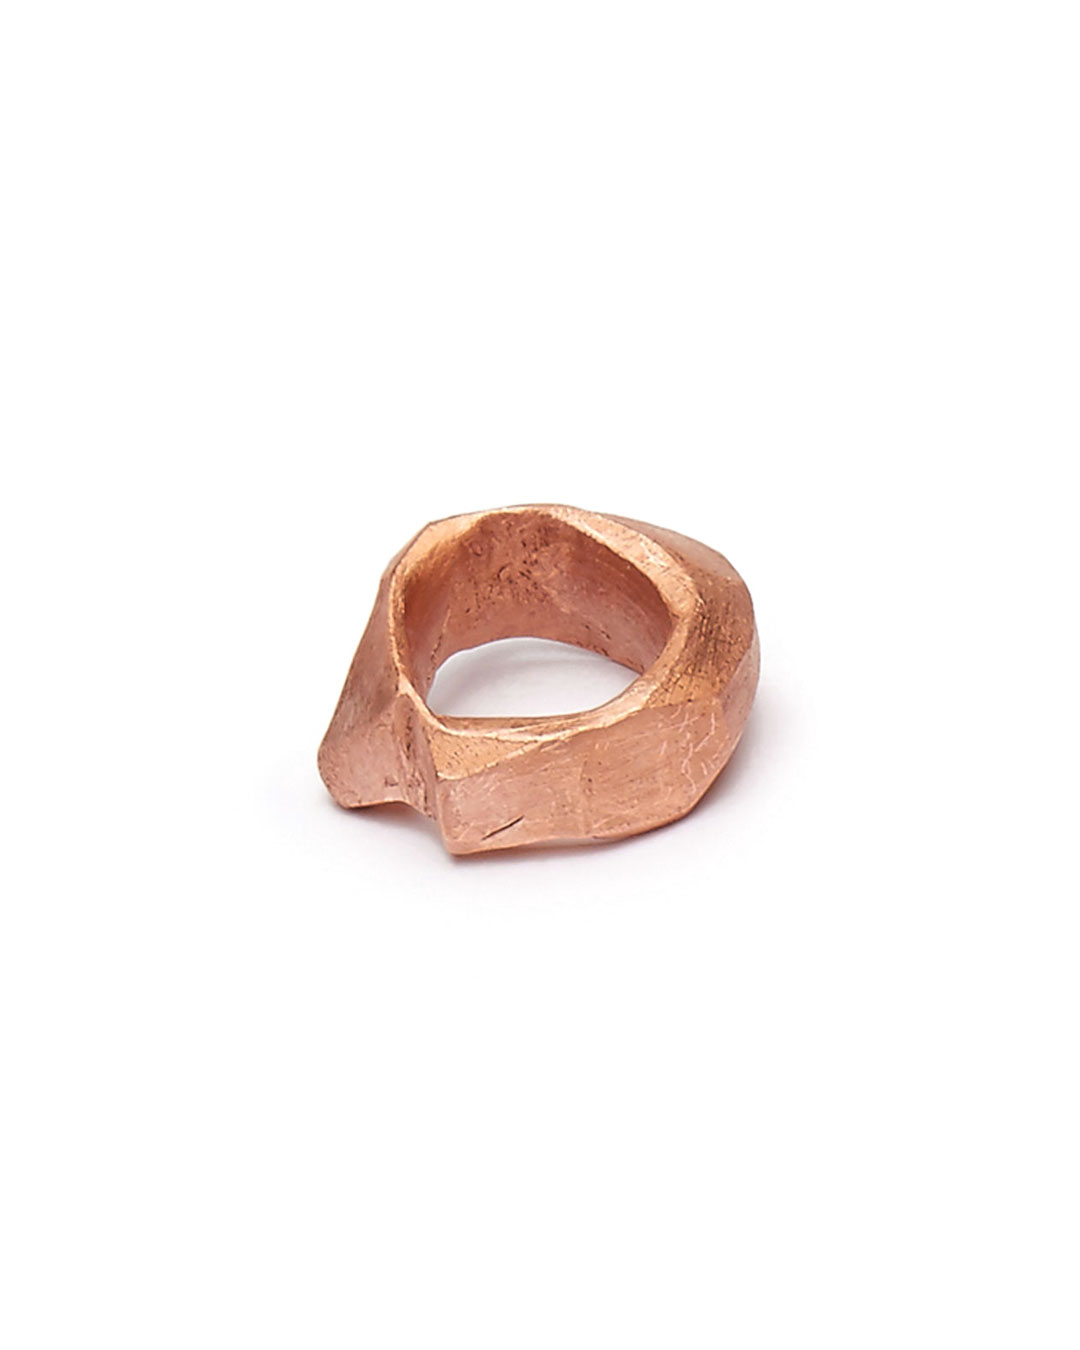 Iris Bodemer, Notizen (Notes), 2016, ring; bronze, 33 x 29 x 15 mm, €500